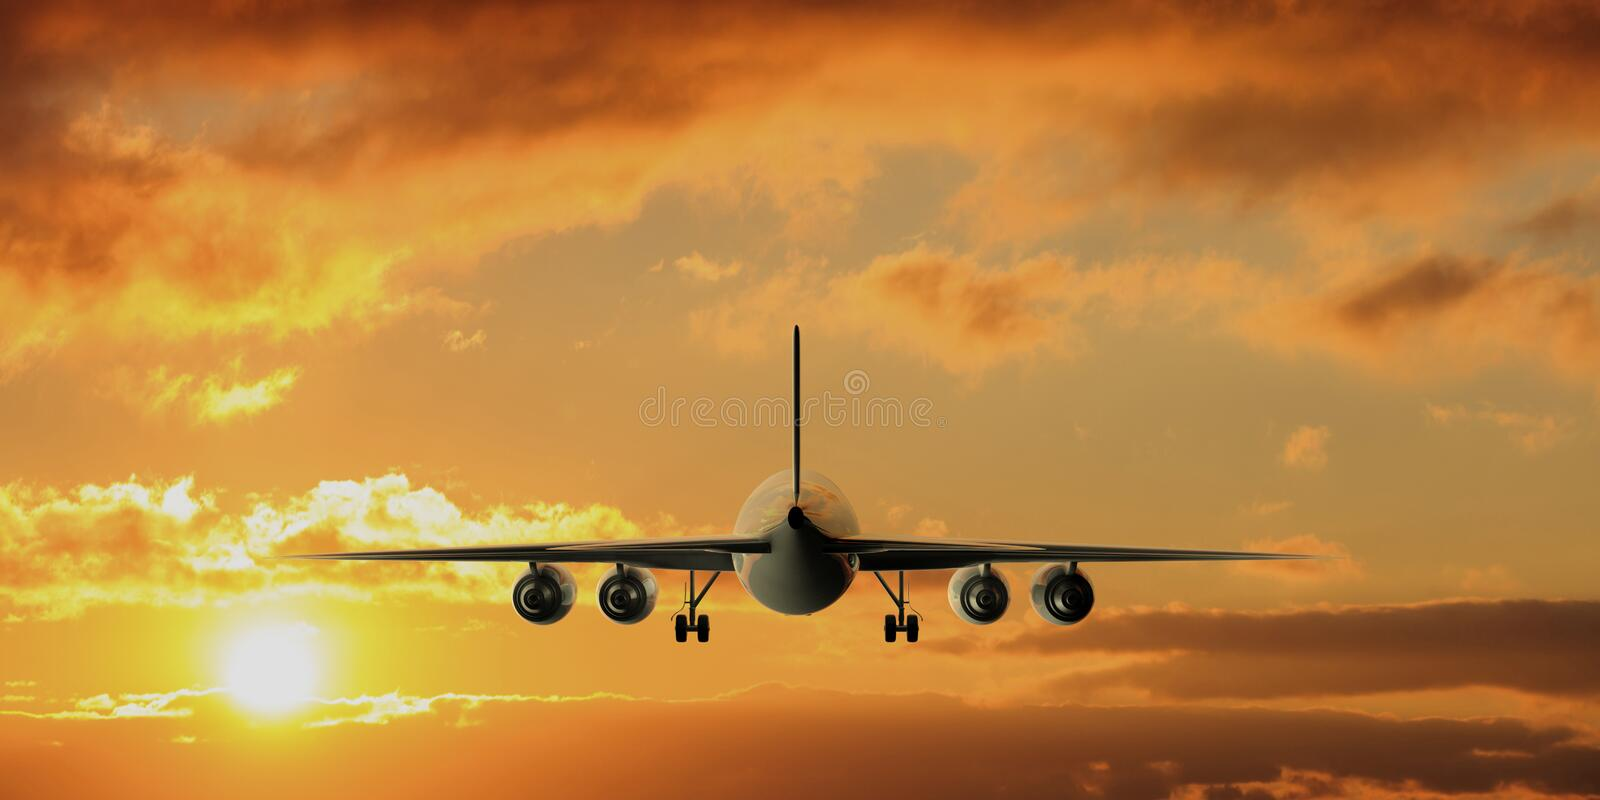 Airplane on sunset or sunrise sky background, back view. 3d illustration stock illustration